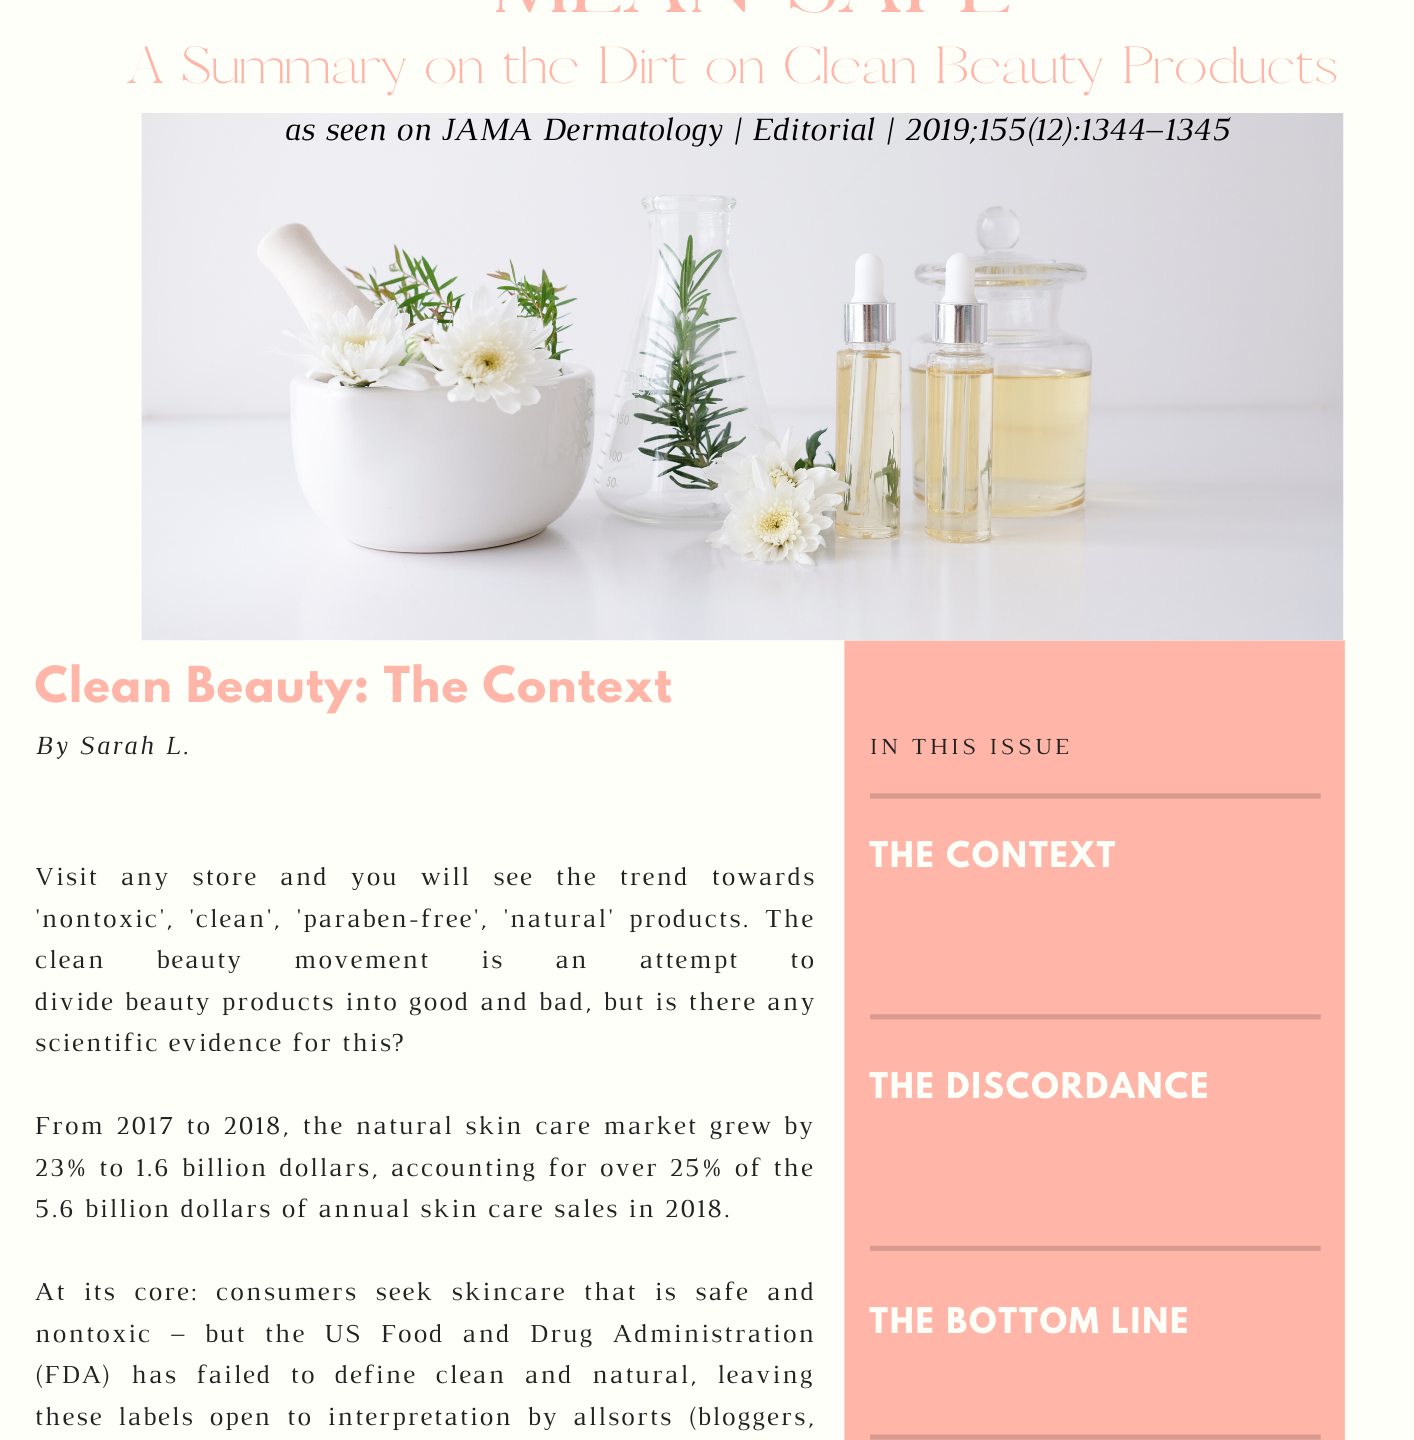 clean beauty, dermatology, dermatologists, sustainable, environmentally friendly, parabens, sulfates, safe, healthy, living, pretroleum, preservatives, fragrances, natural, skincare, skin, beauty